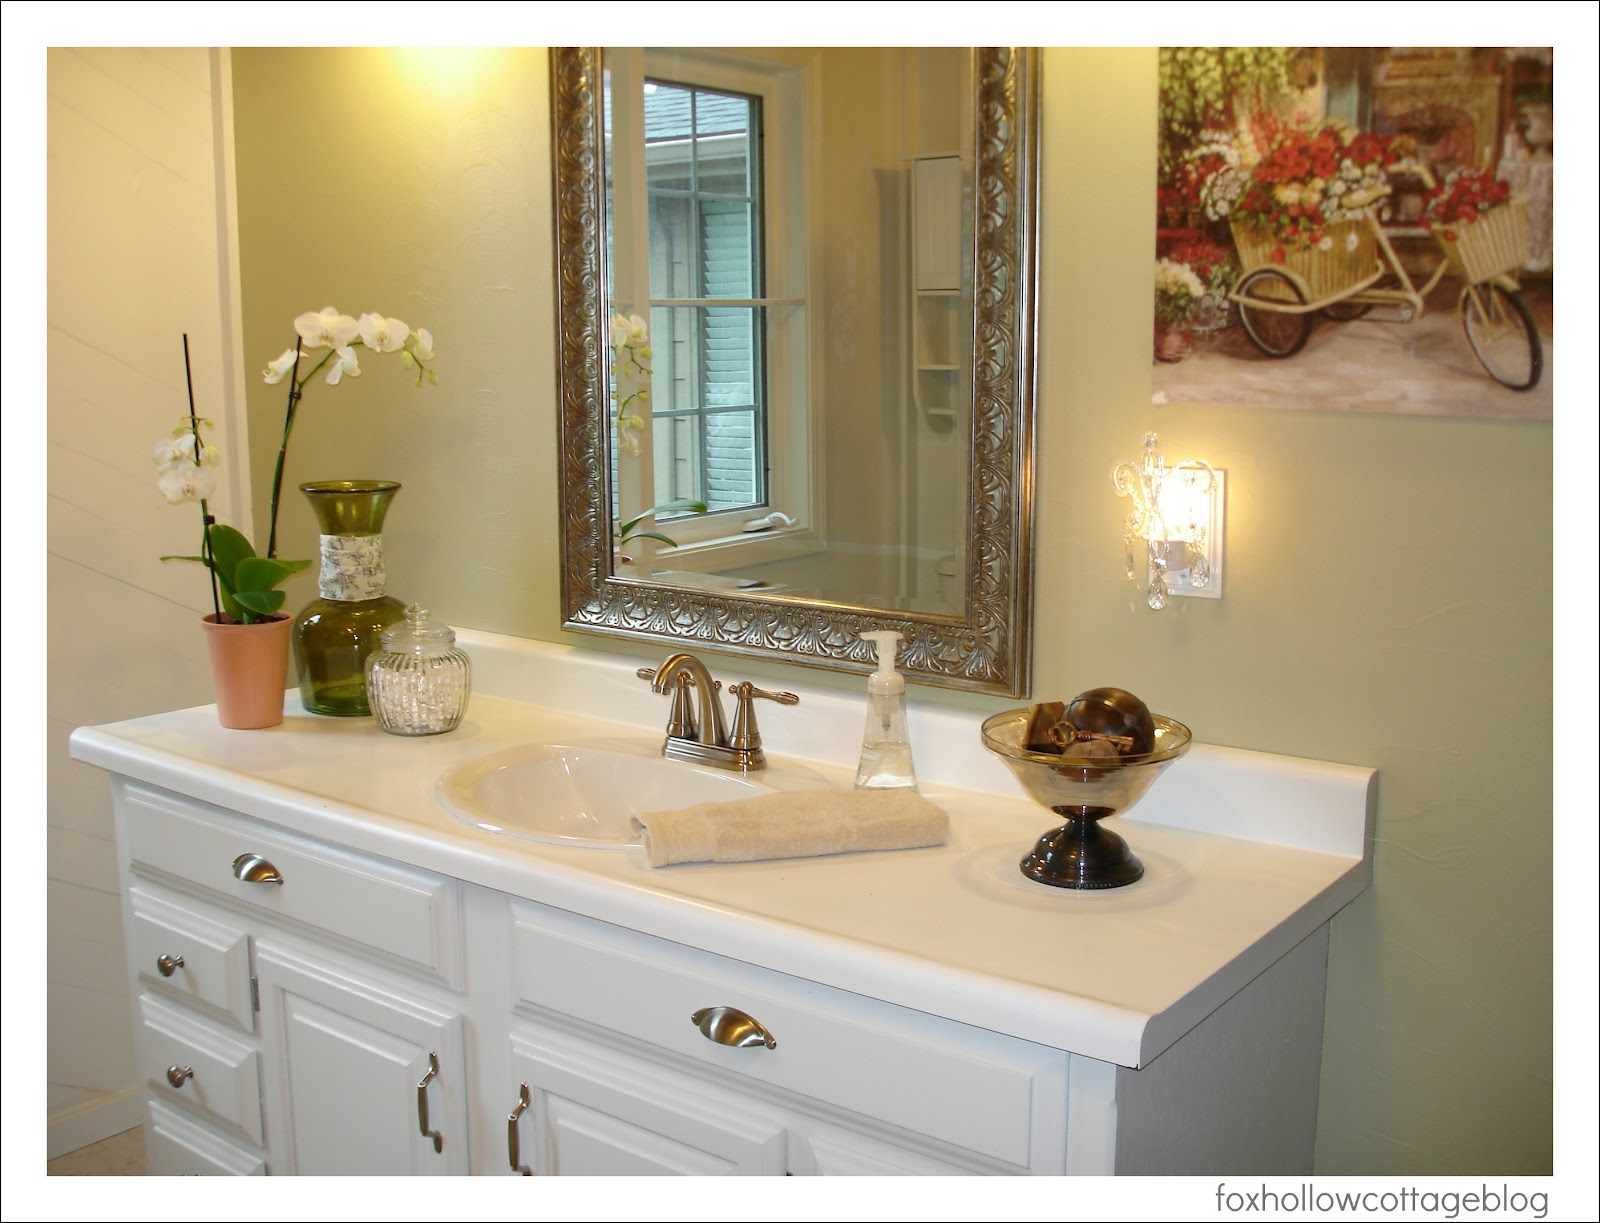 Bathroom Makeover Contest a super budget bathroom makeover - fox hollow cottage